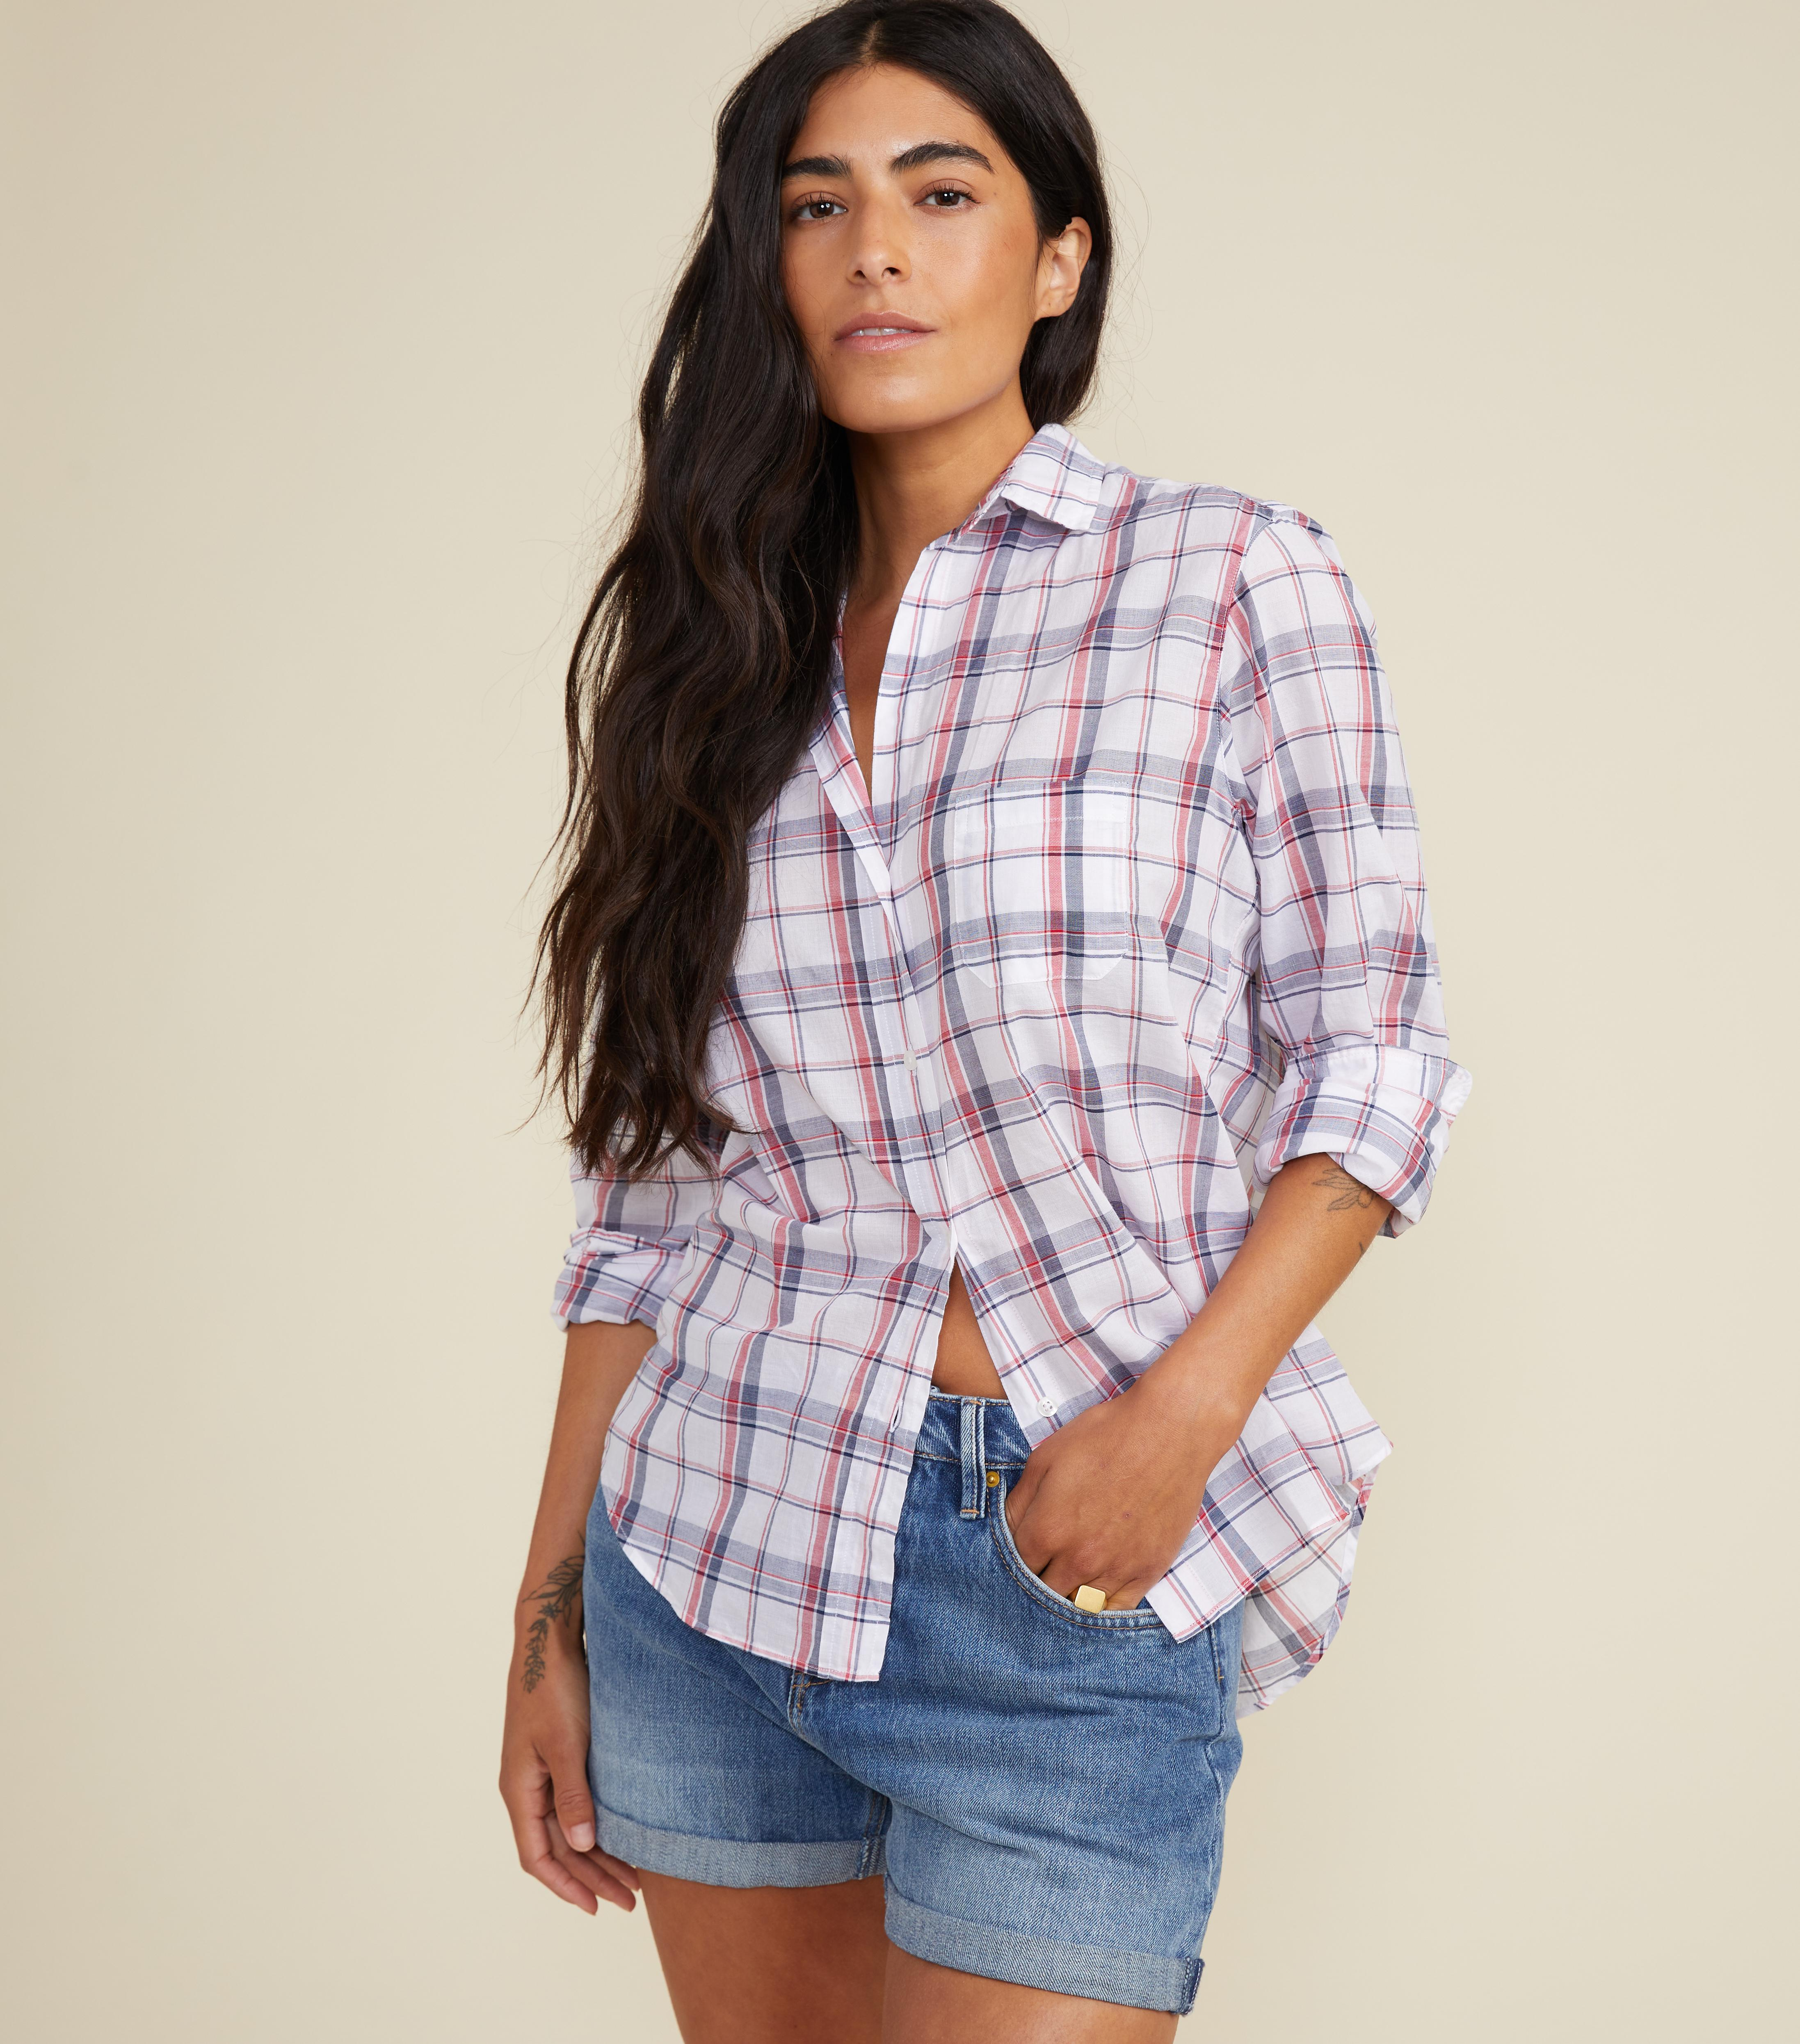 The Hero White with Navy and Red Plaid, Tissue Cotton Final Sale